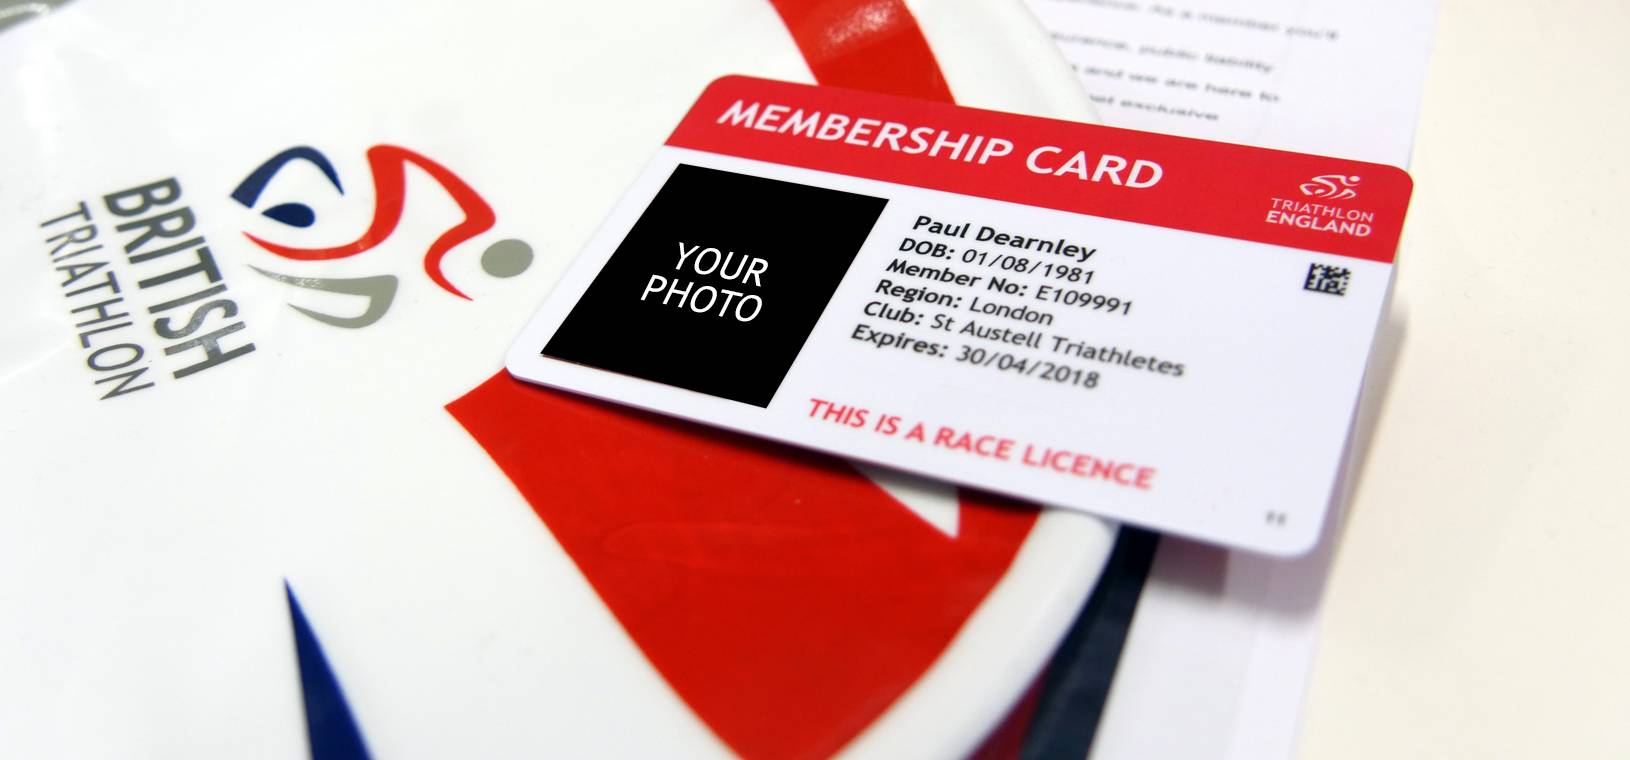 upload a photo ready for your new membership card